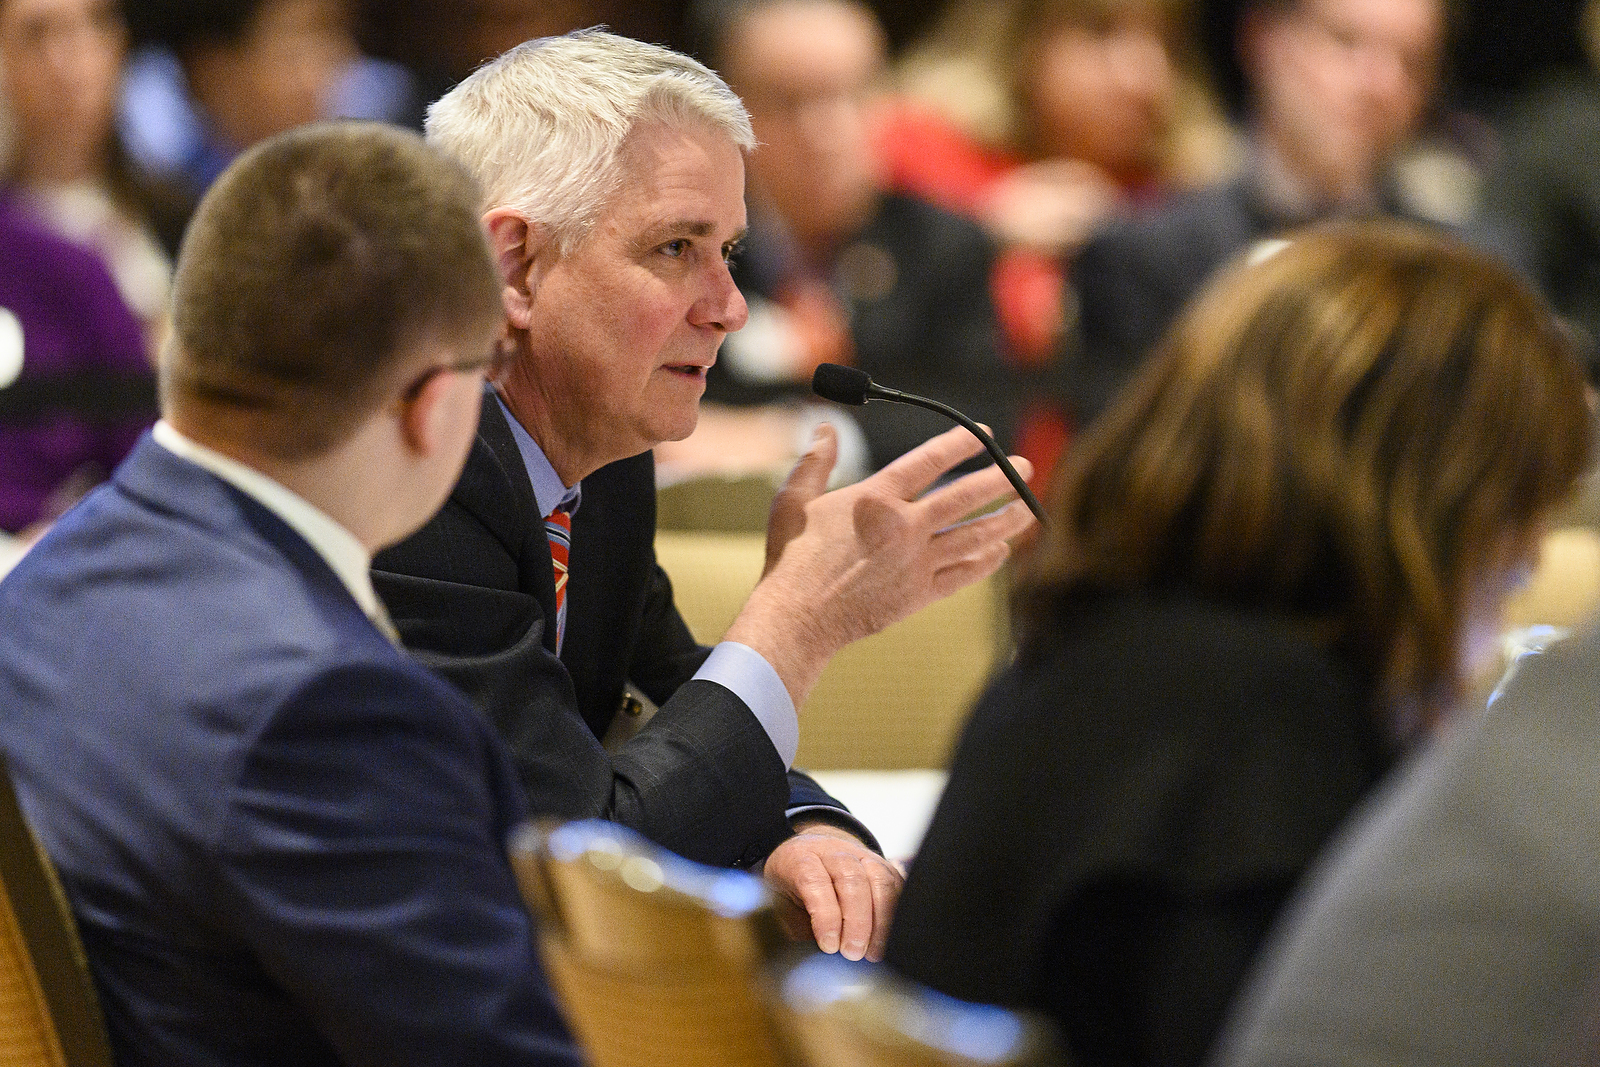 UW System Regent Robert Atwell speaks at the UW System Board of Regents meeting hosted at Union South at the University of Wisconsin-Madison on Feb. 7, 2019. (Photo by Bryce Richter /UW-Madison)